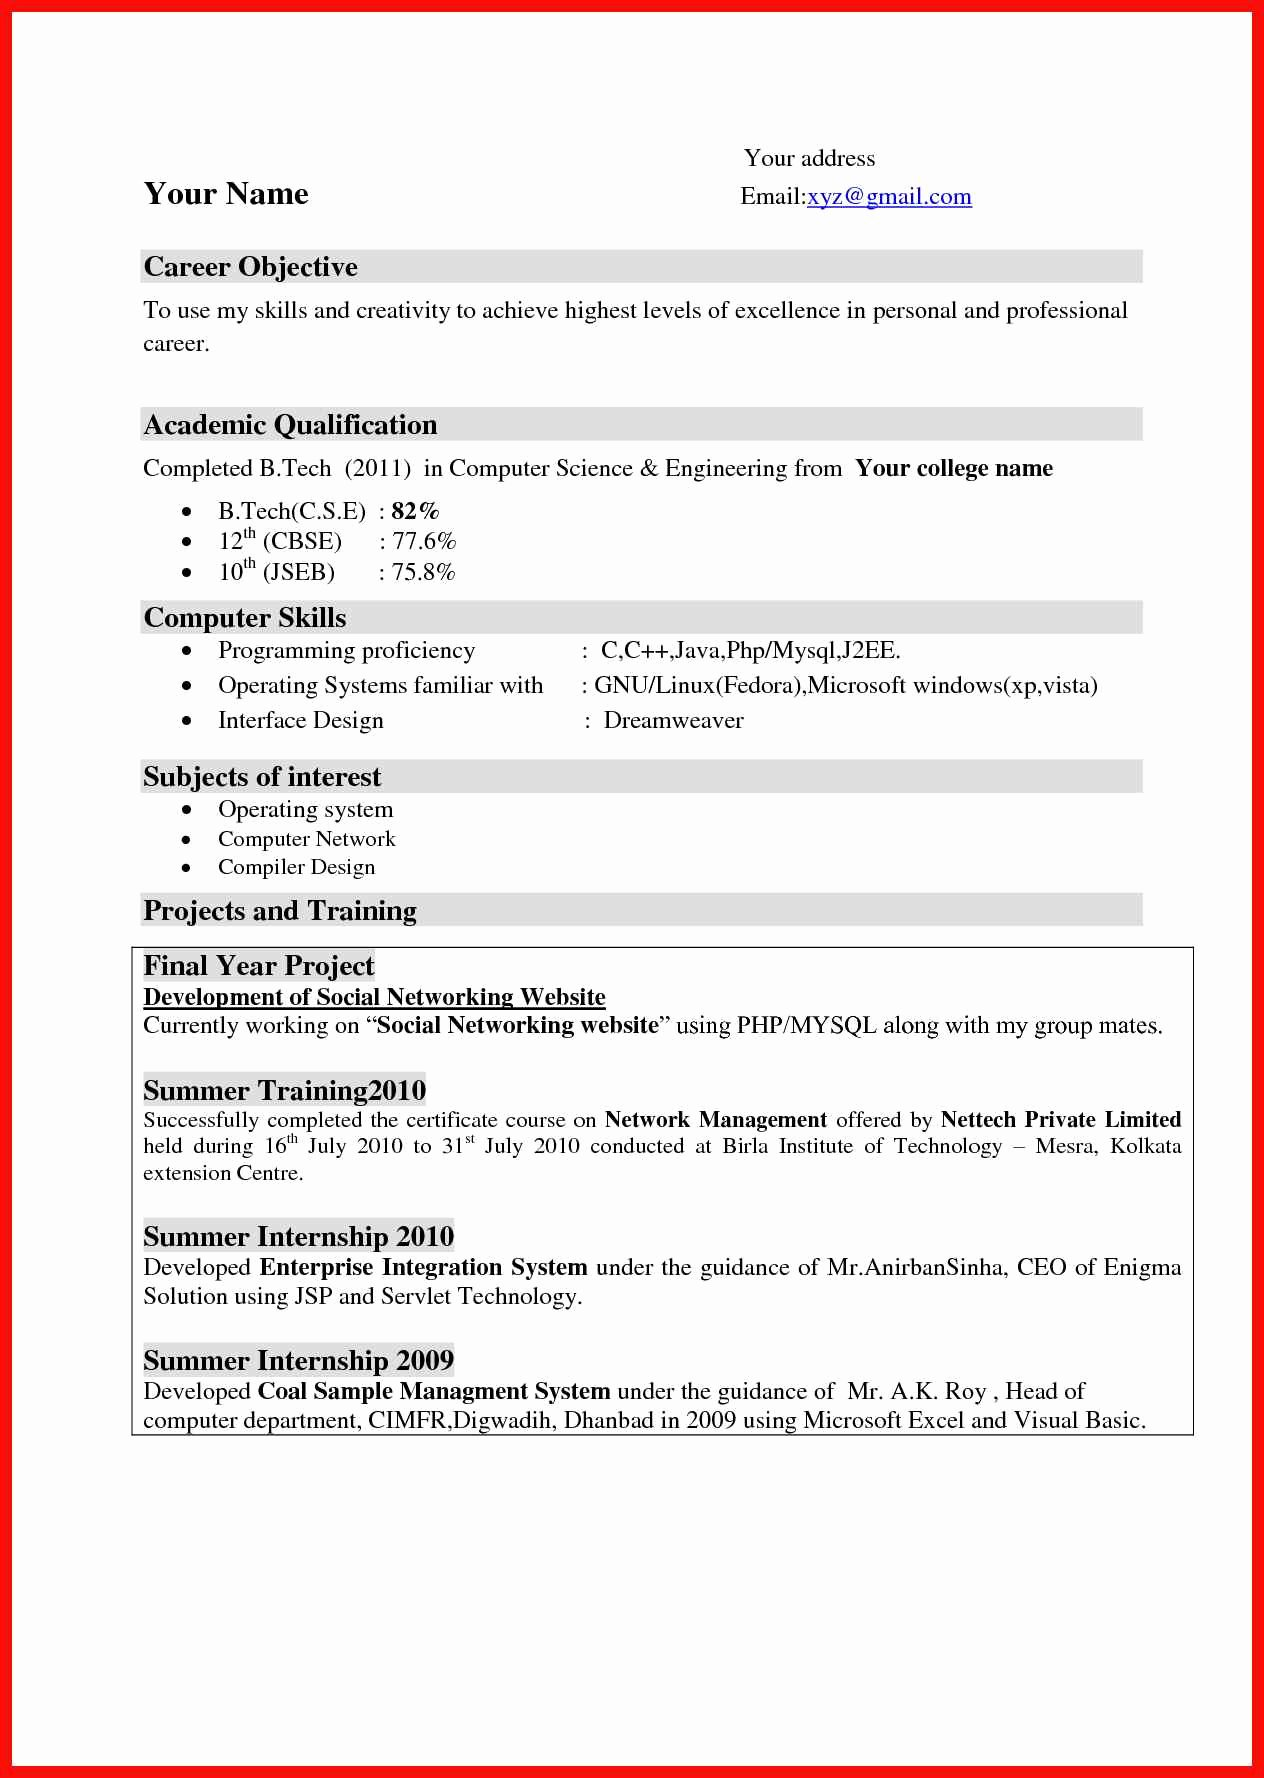 Examples Of Excellent Resumes Luxury Excellent Resume Example